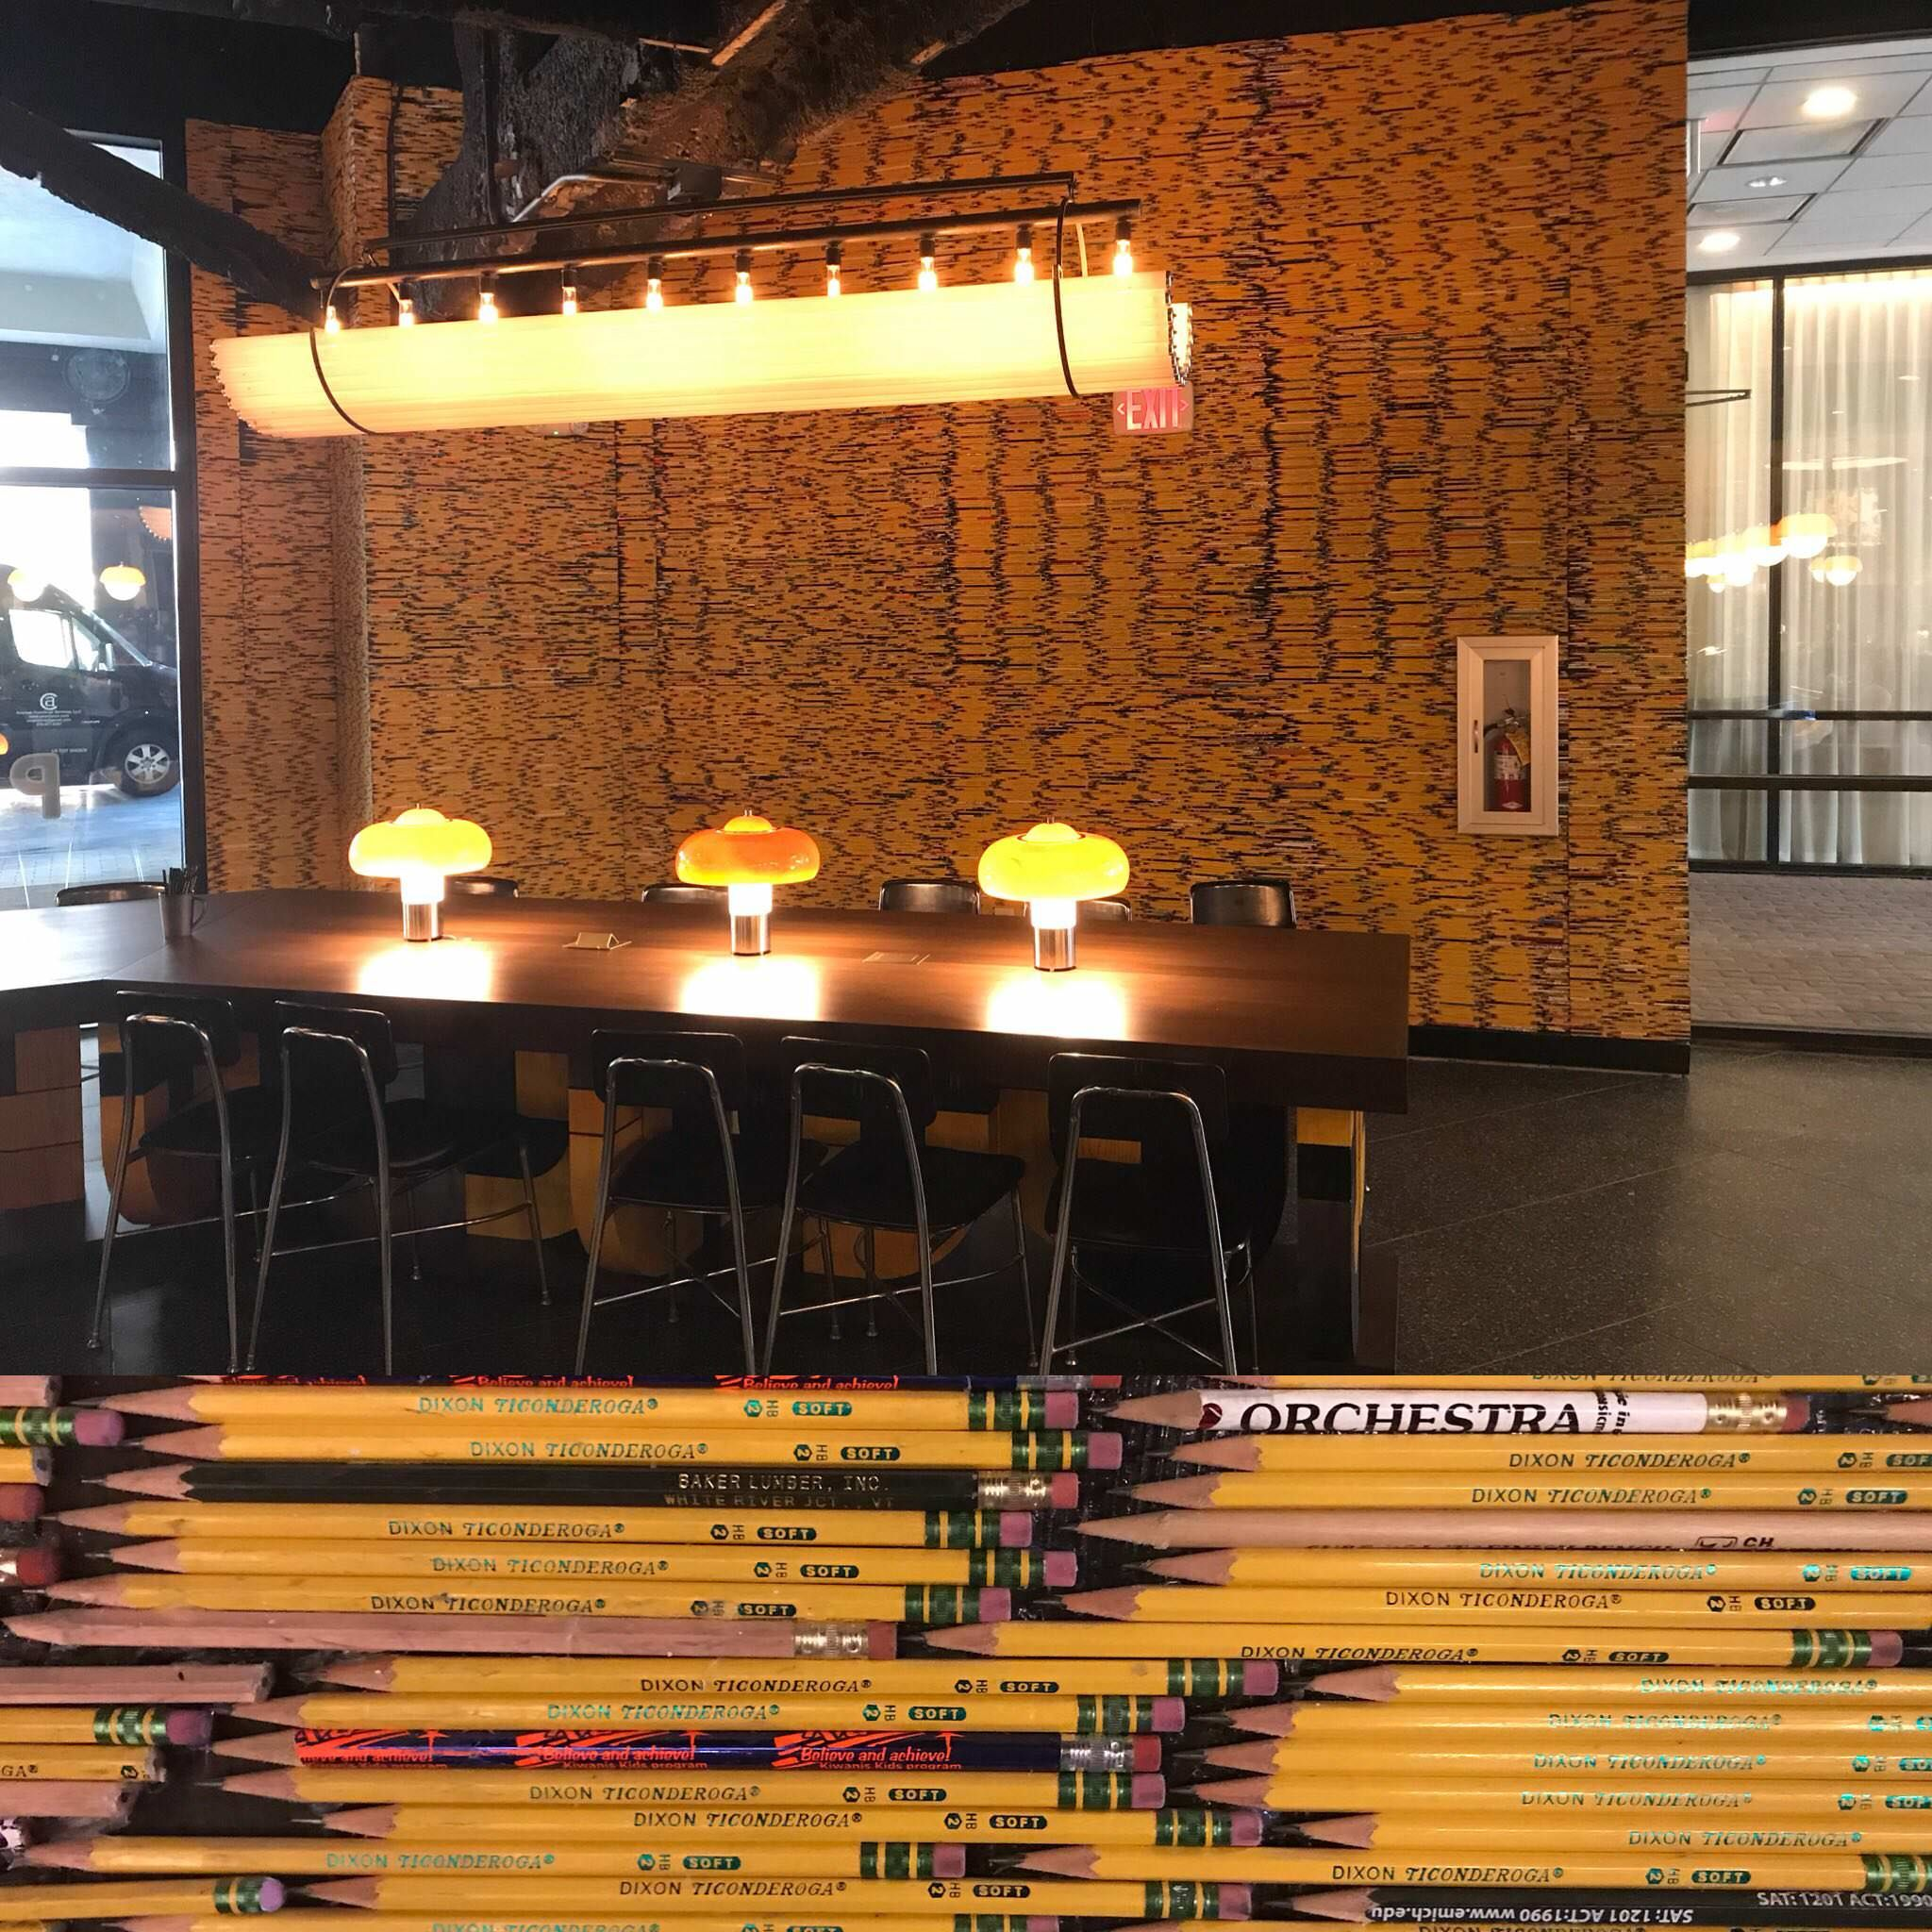 The Graduate Hotel In Iowa City Has A Coffee Shop With 6 7 Walls Decorated With Pencils All 2 Amp Sharpened Coffee Shop Wall Decor Decor